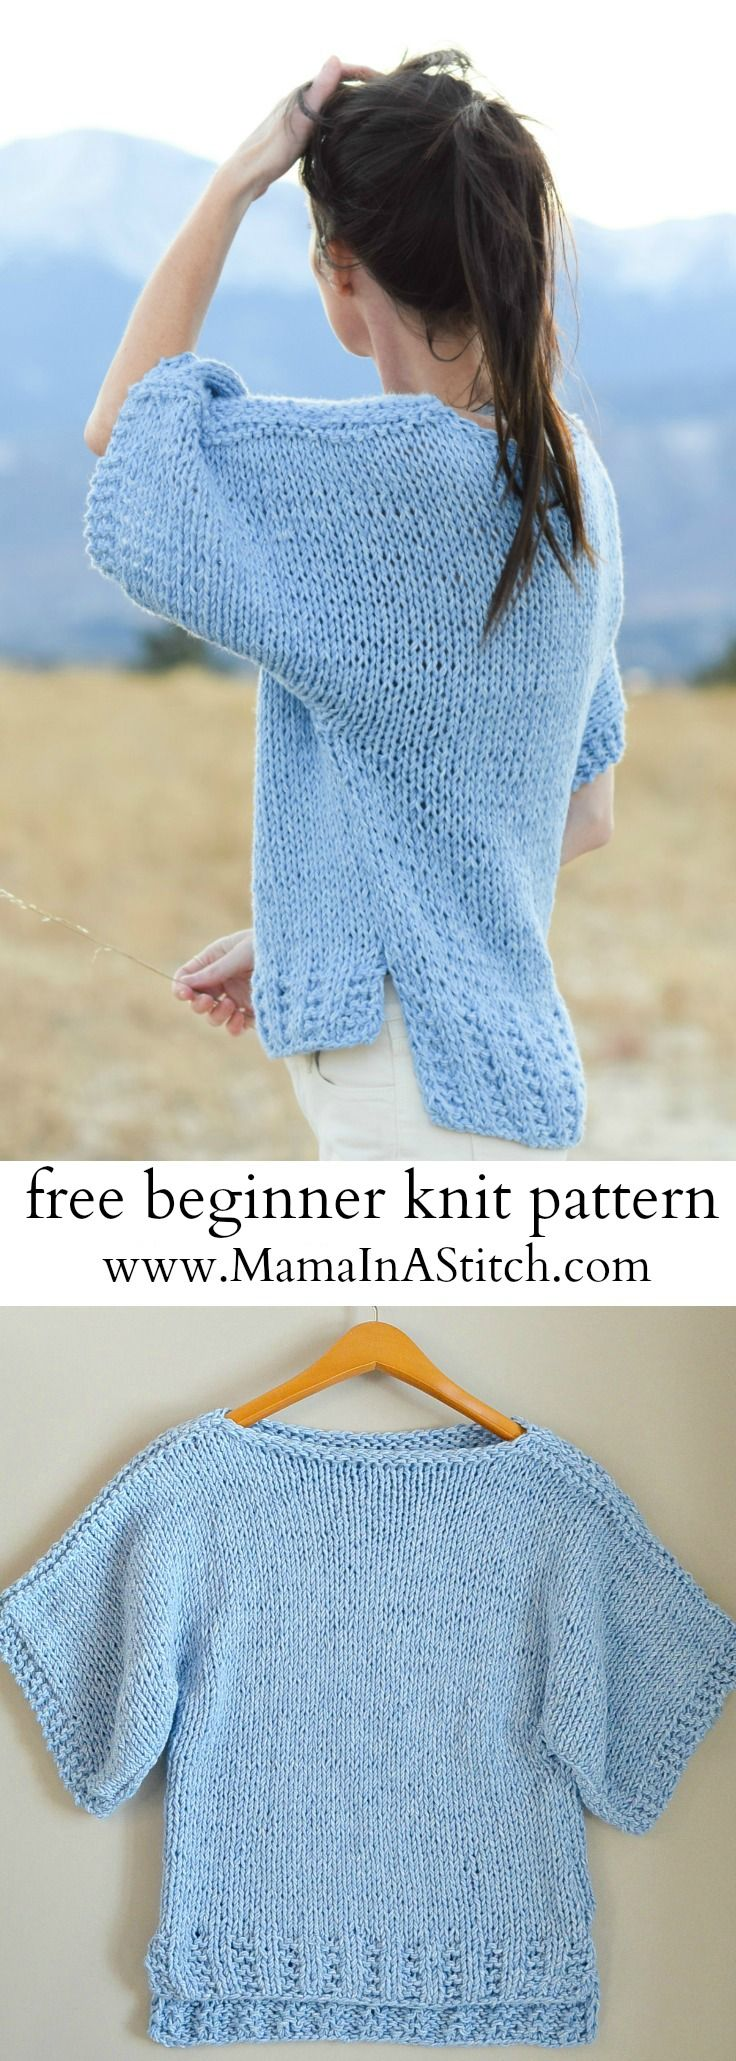 1141 best knitting machine ideas images on pinterest crochet super easy free knitting pattern for a cute top from mama in a stitch diy not only is this beautiful but it would look good on almost any body type bankloansurffo Image collections